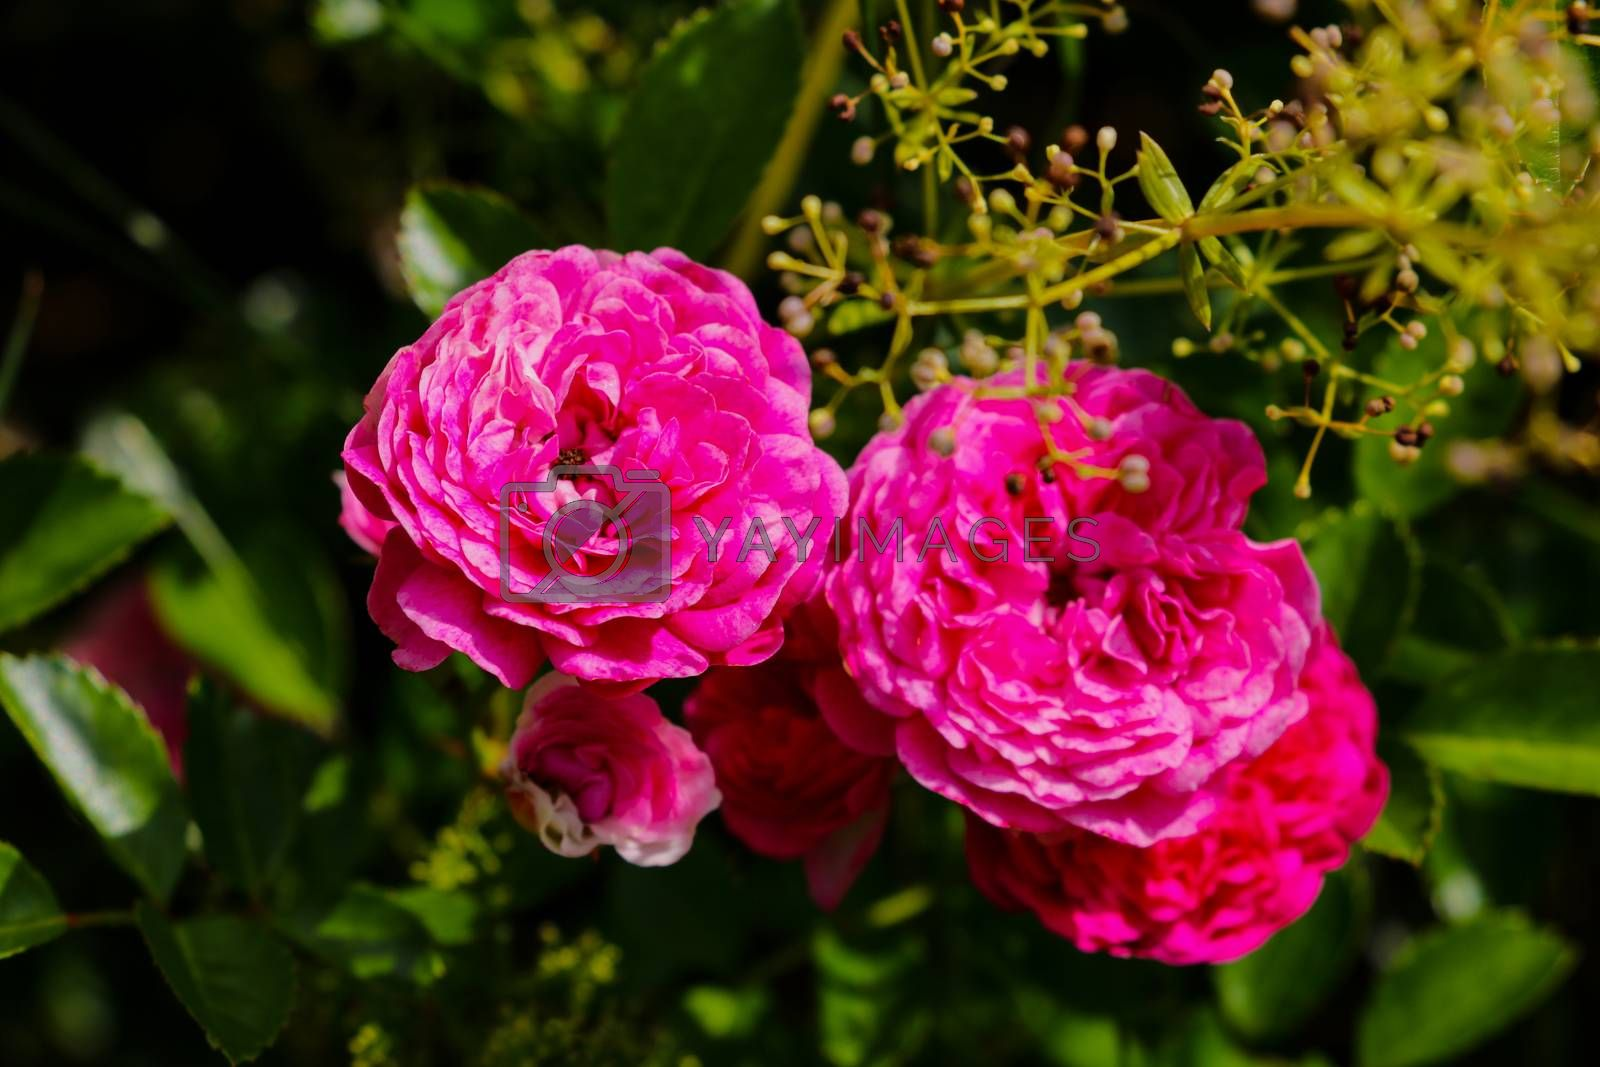 Flowering red roses in the garden, nature. by kip02kas